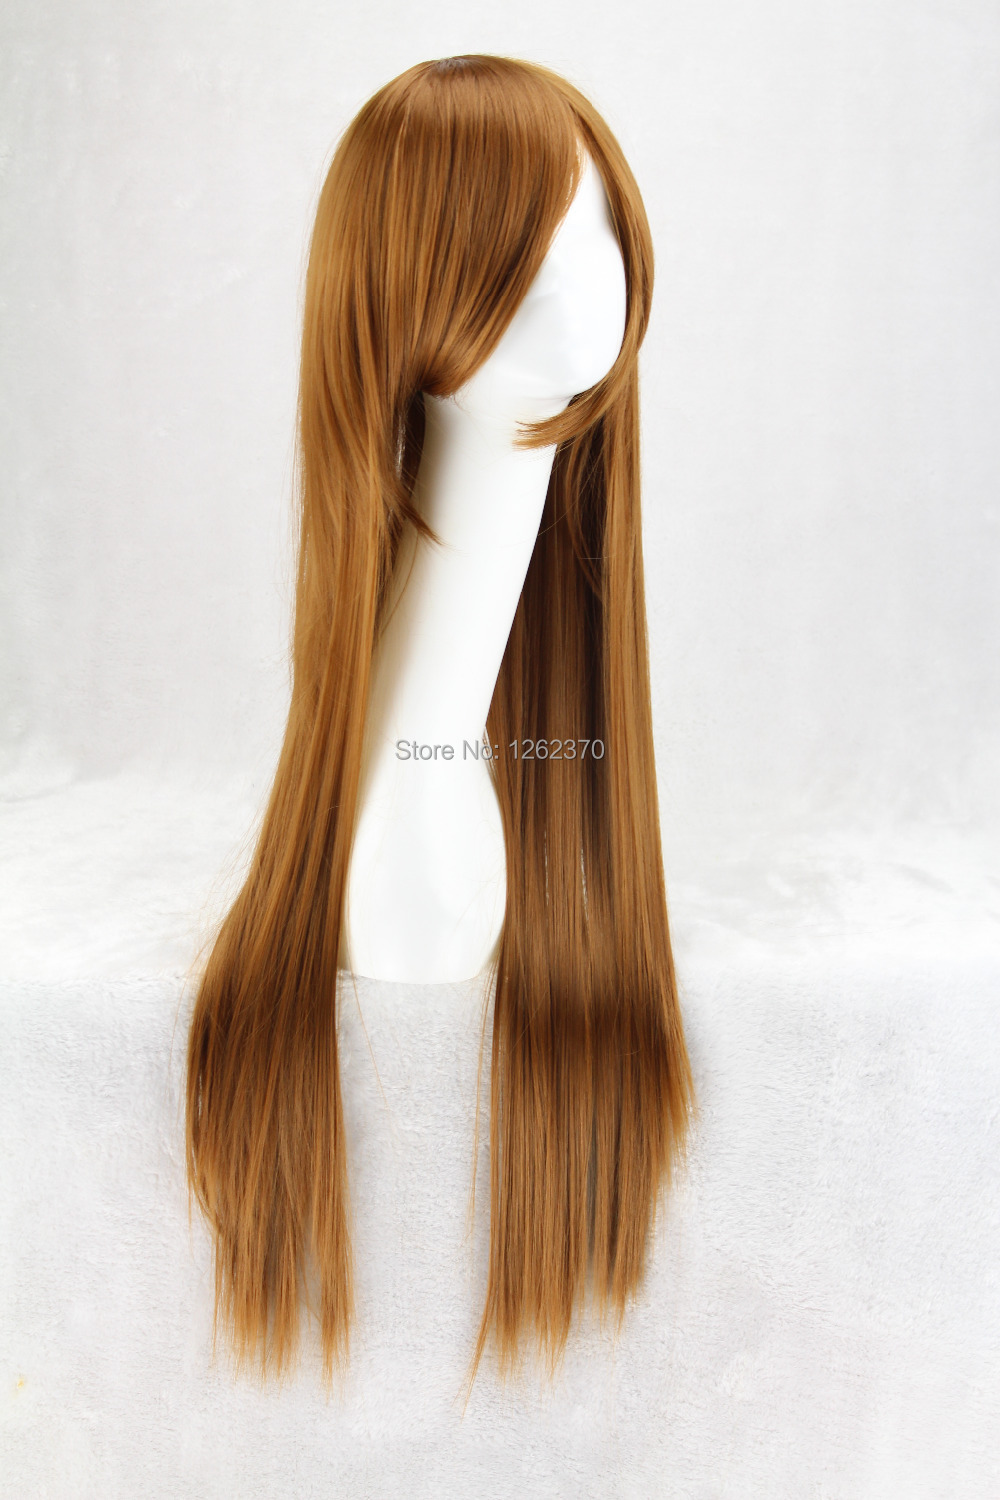 80 Cm Harajuku Cosplay Wig Women Long Straight Costume Party Synthetic Hair Full Brown Wigs For Japanese Anime Peruca Pelucas